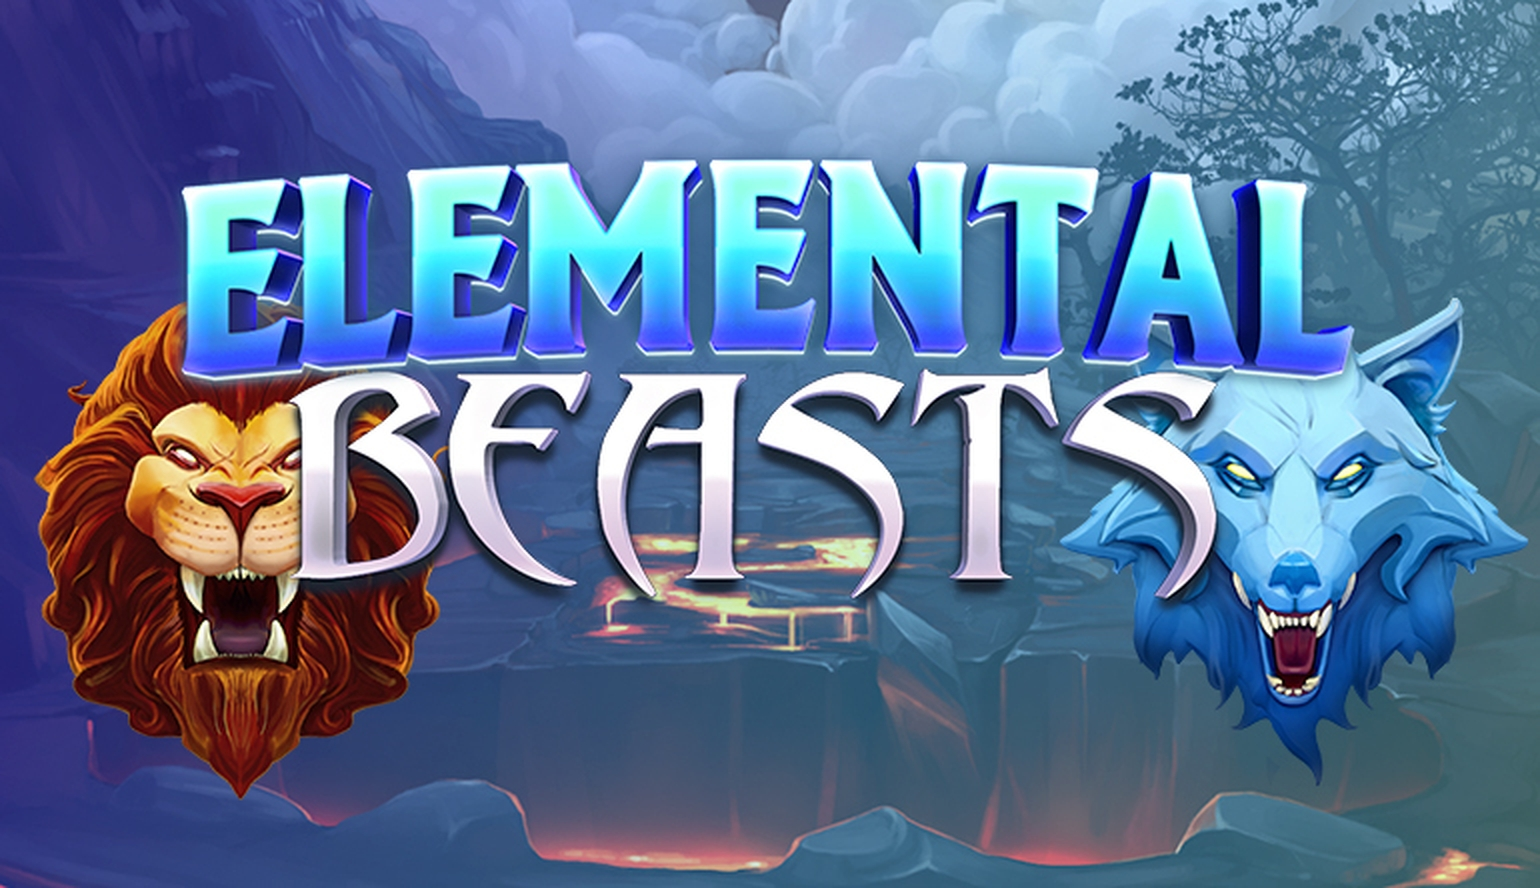 The Elemental Beasts Online Slot Demo Game by Inspired Gaming